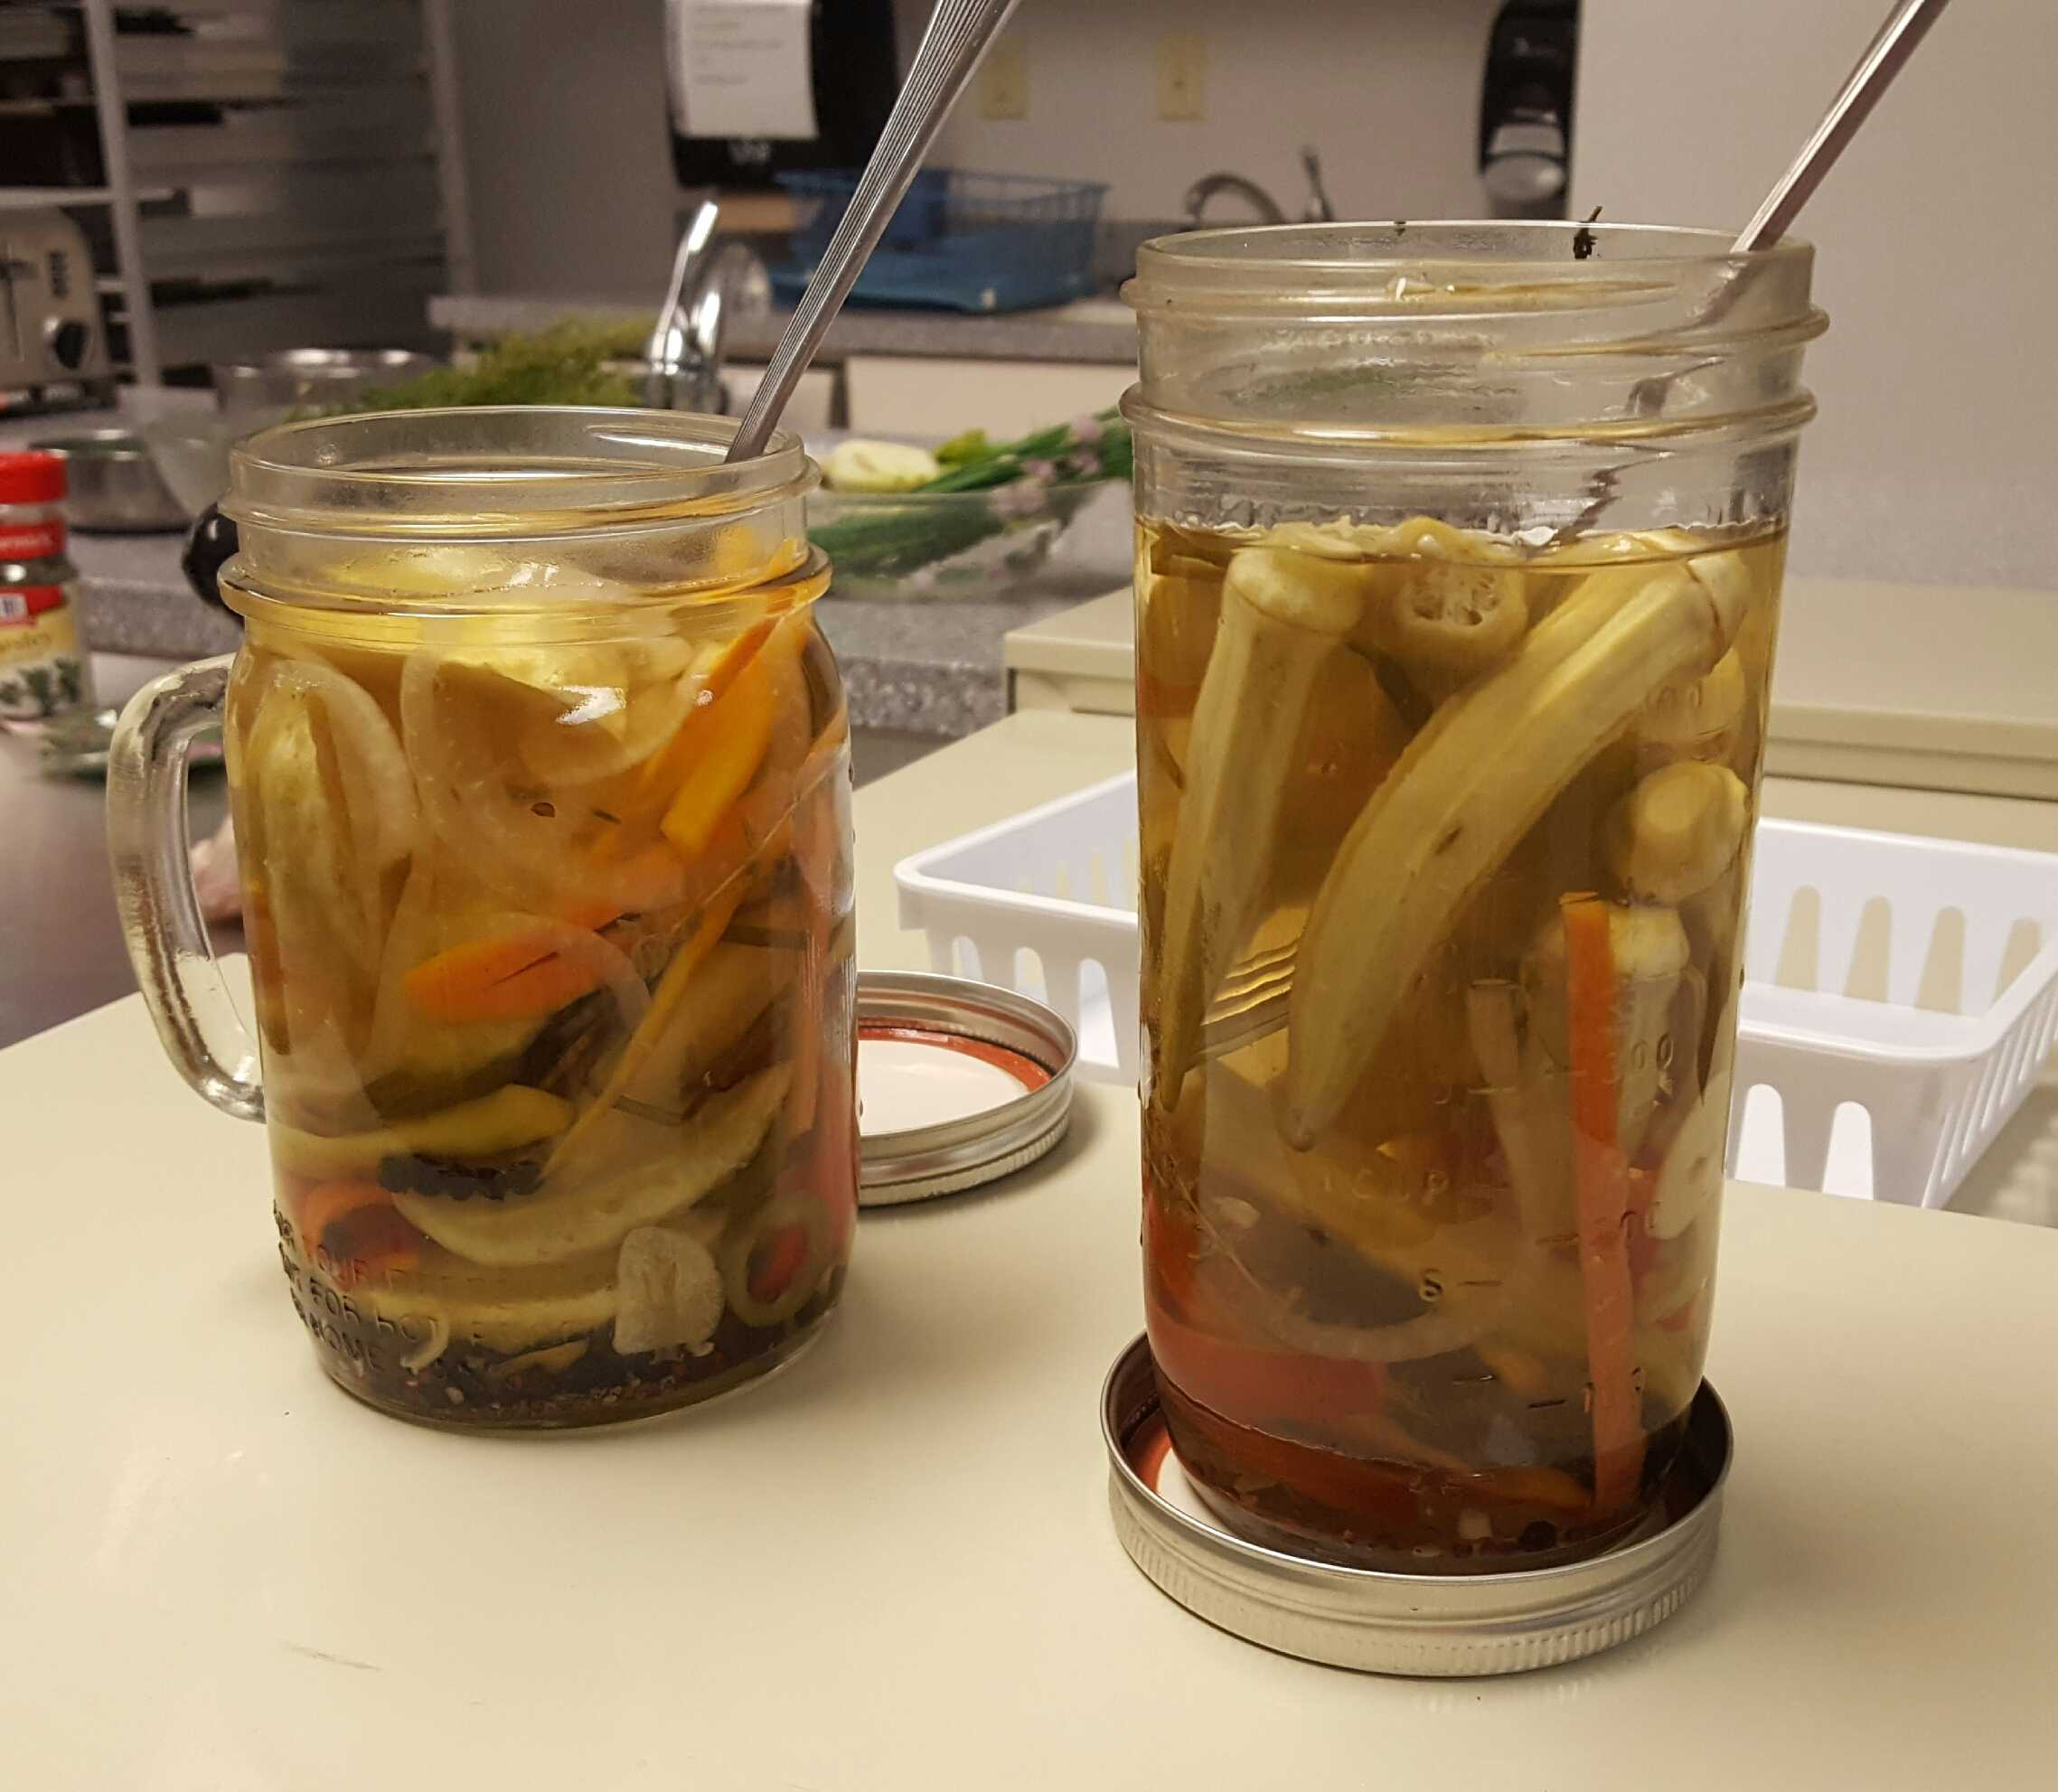 Students learn the process of pickling without creating a health hazard